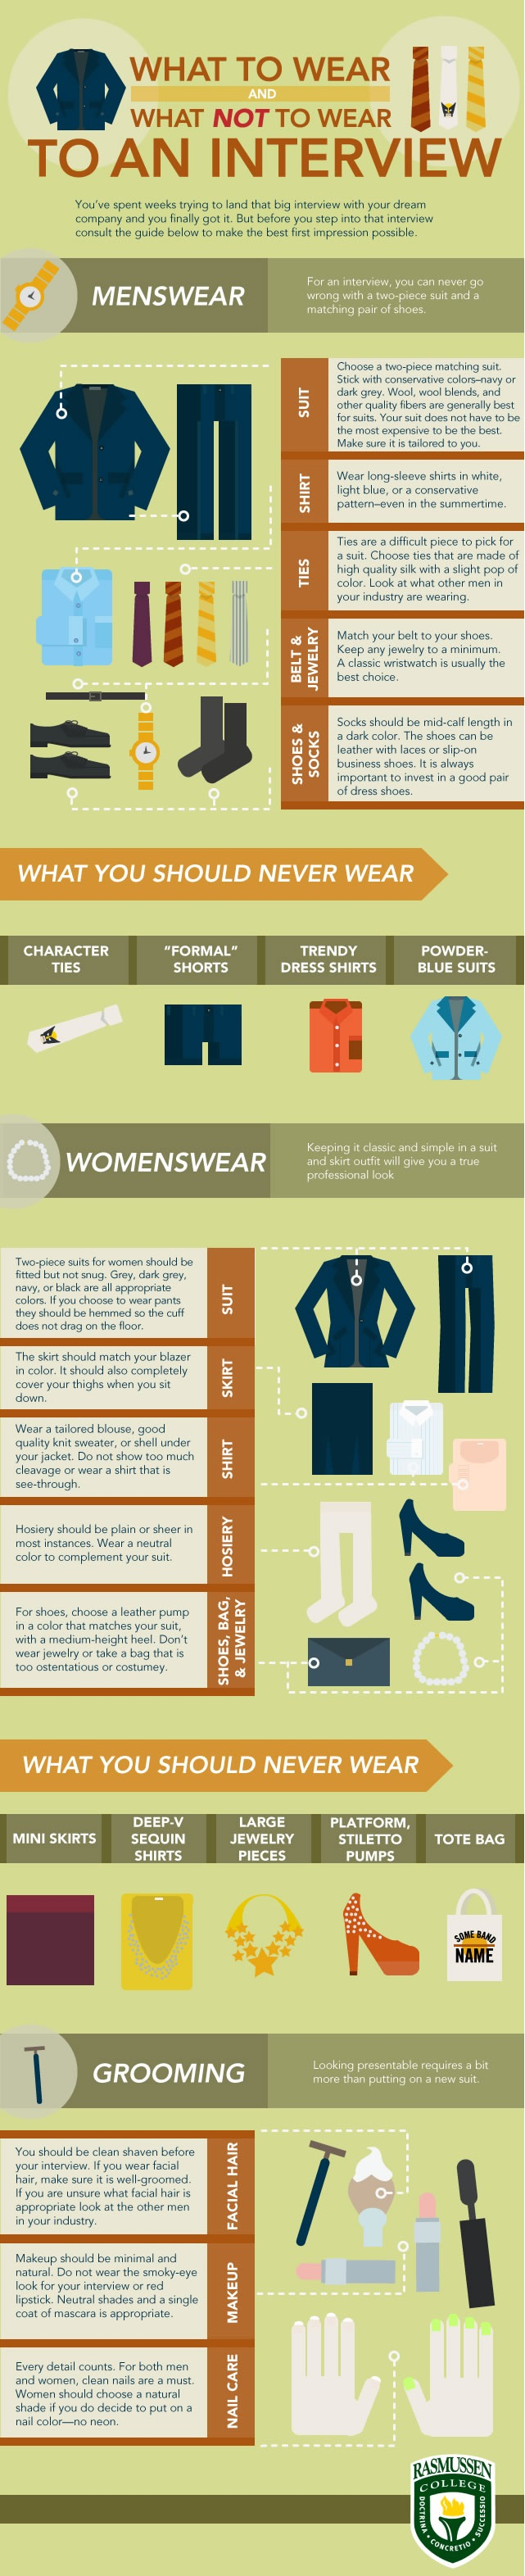 Interview_what-to-wear